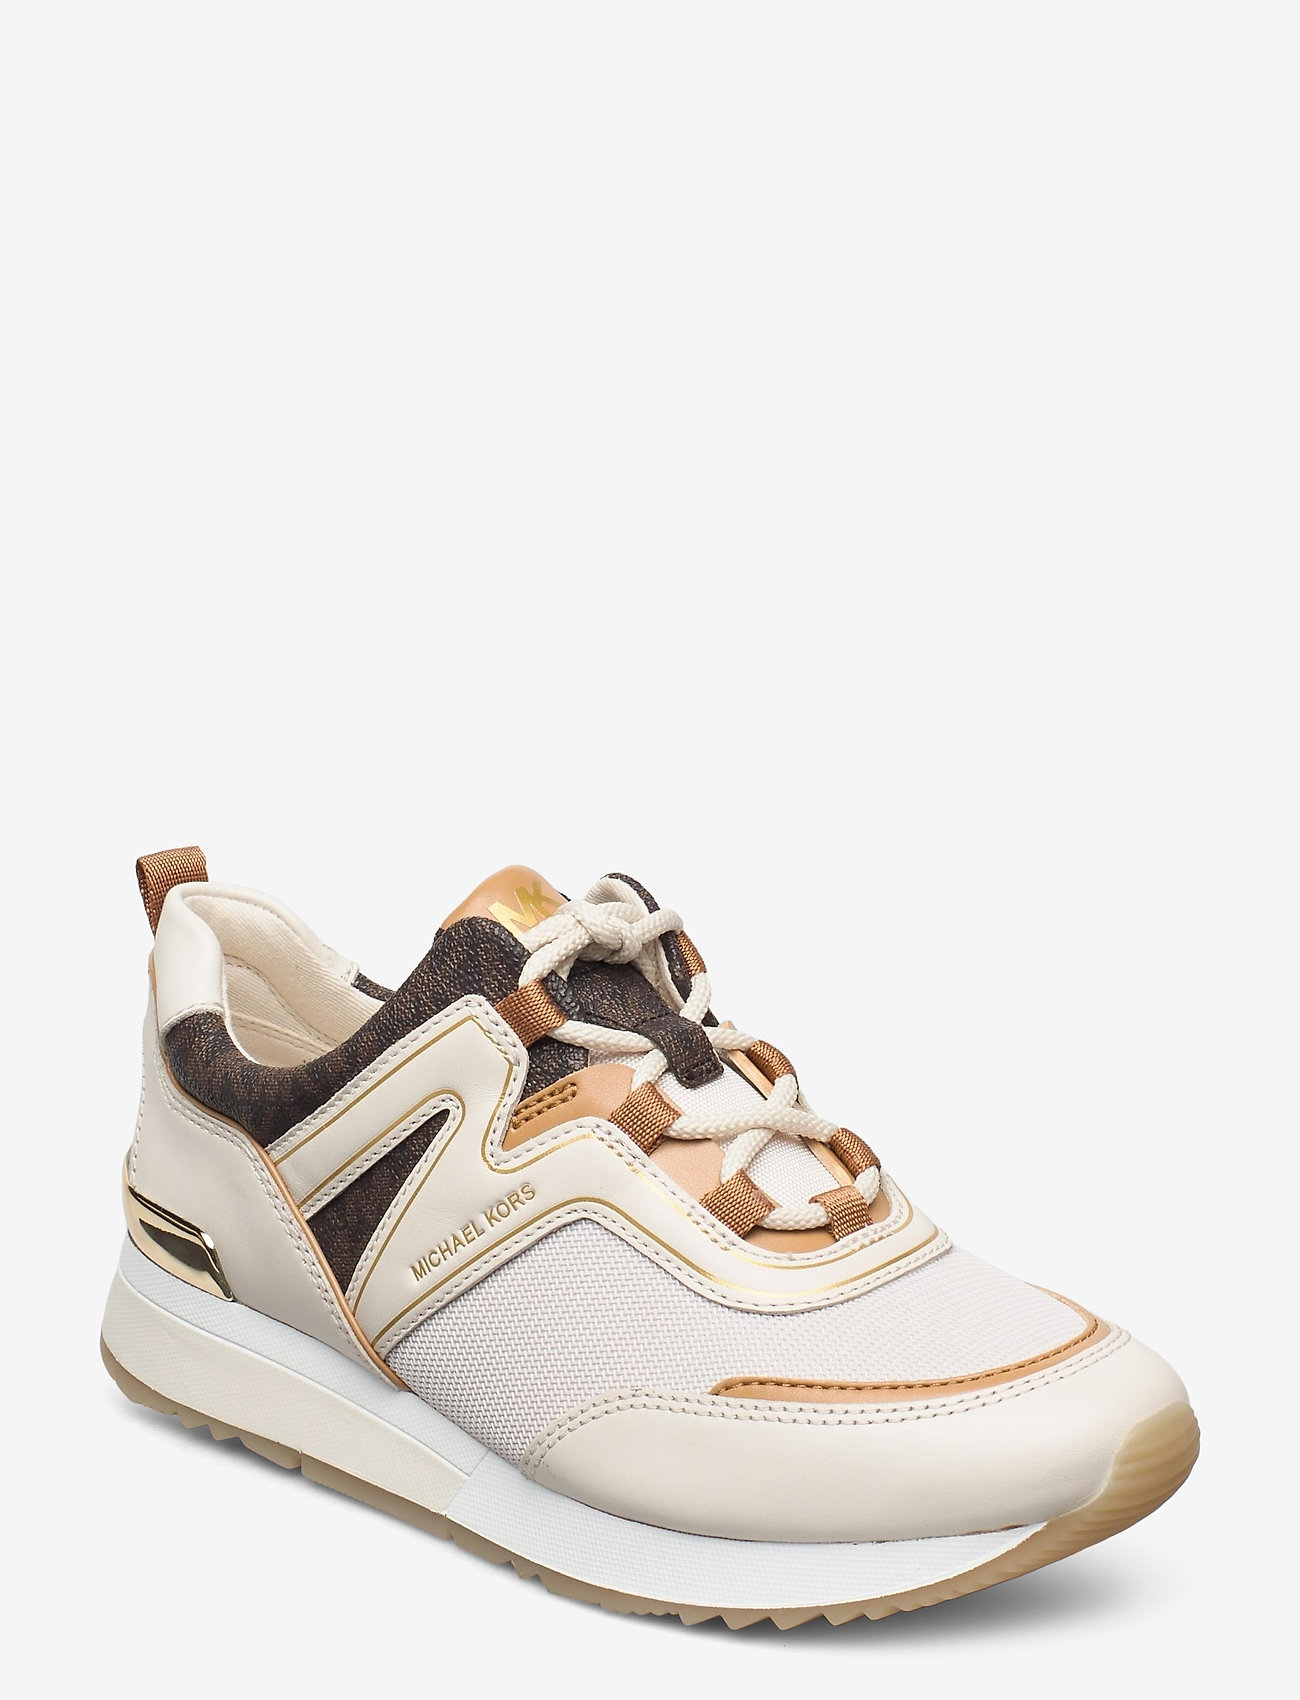 Michael Kors Shoes - PIPPIN TRAINER - low top sneakers - cream multi - 0